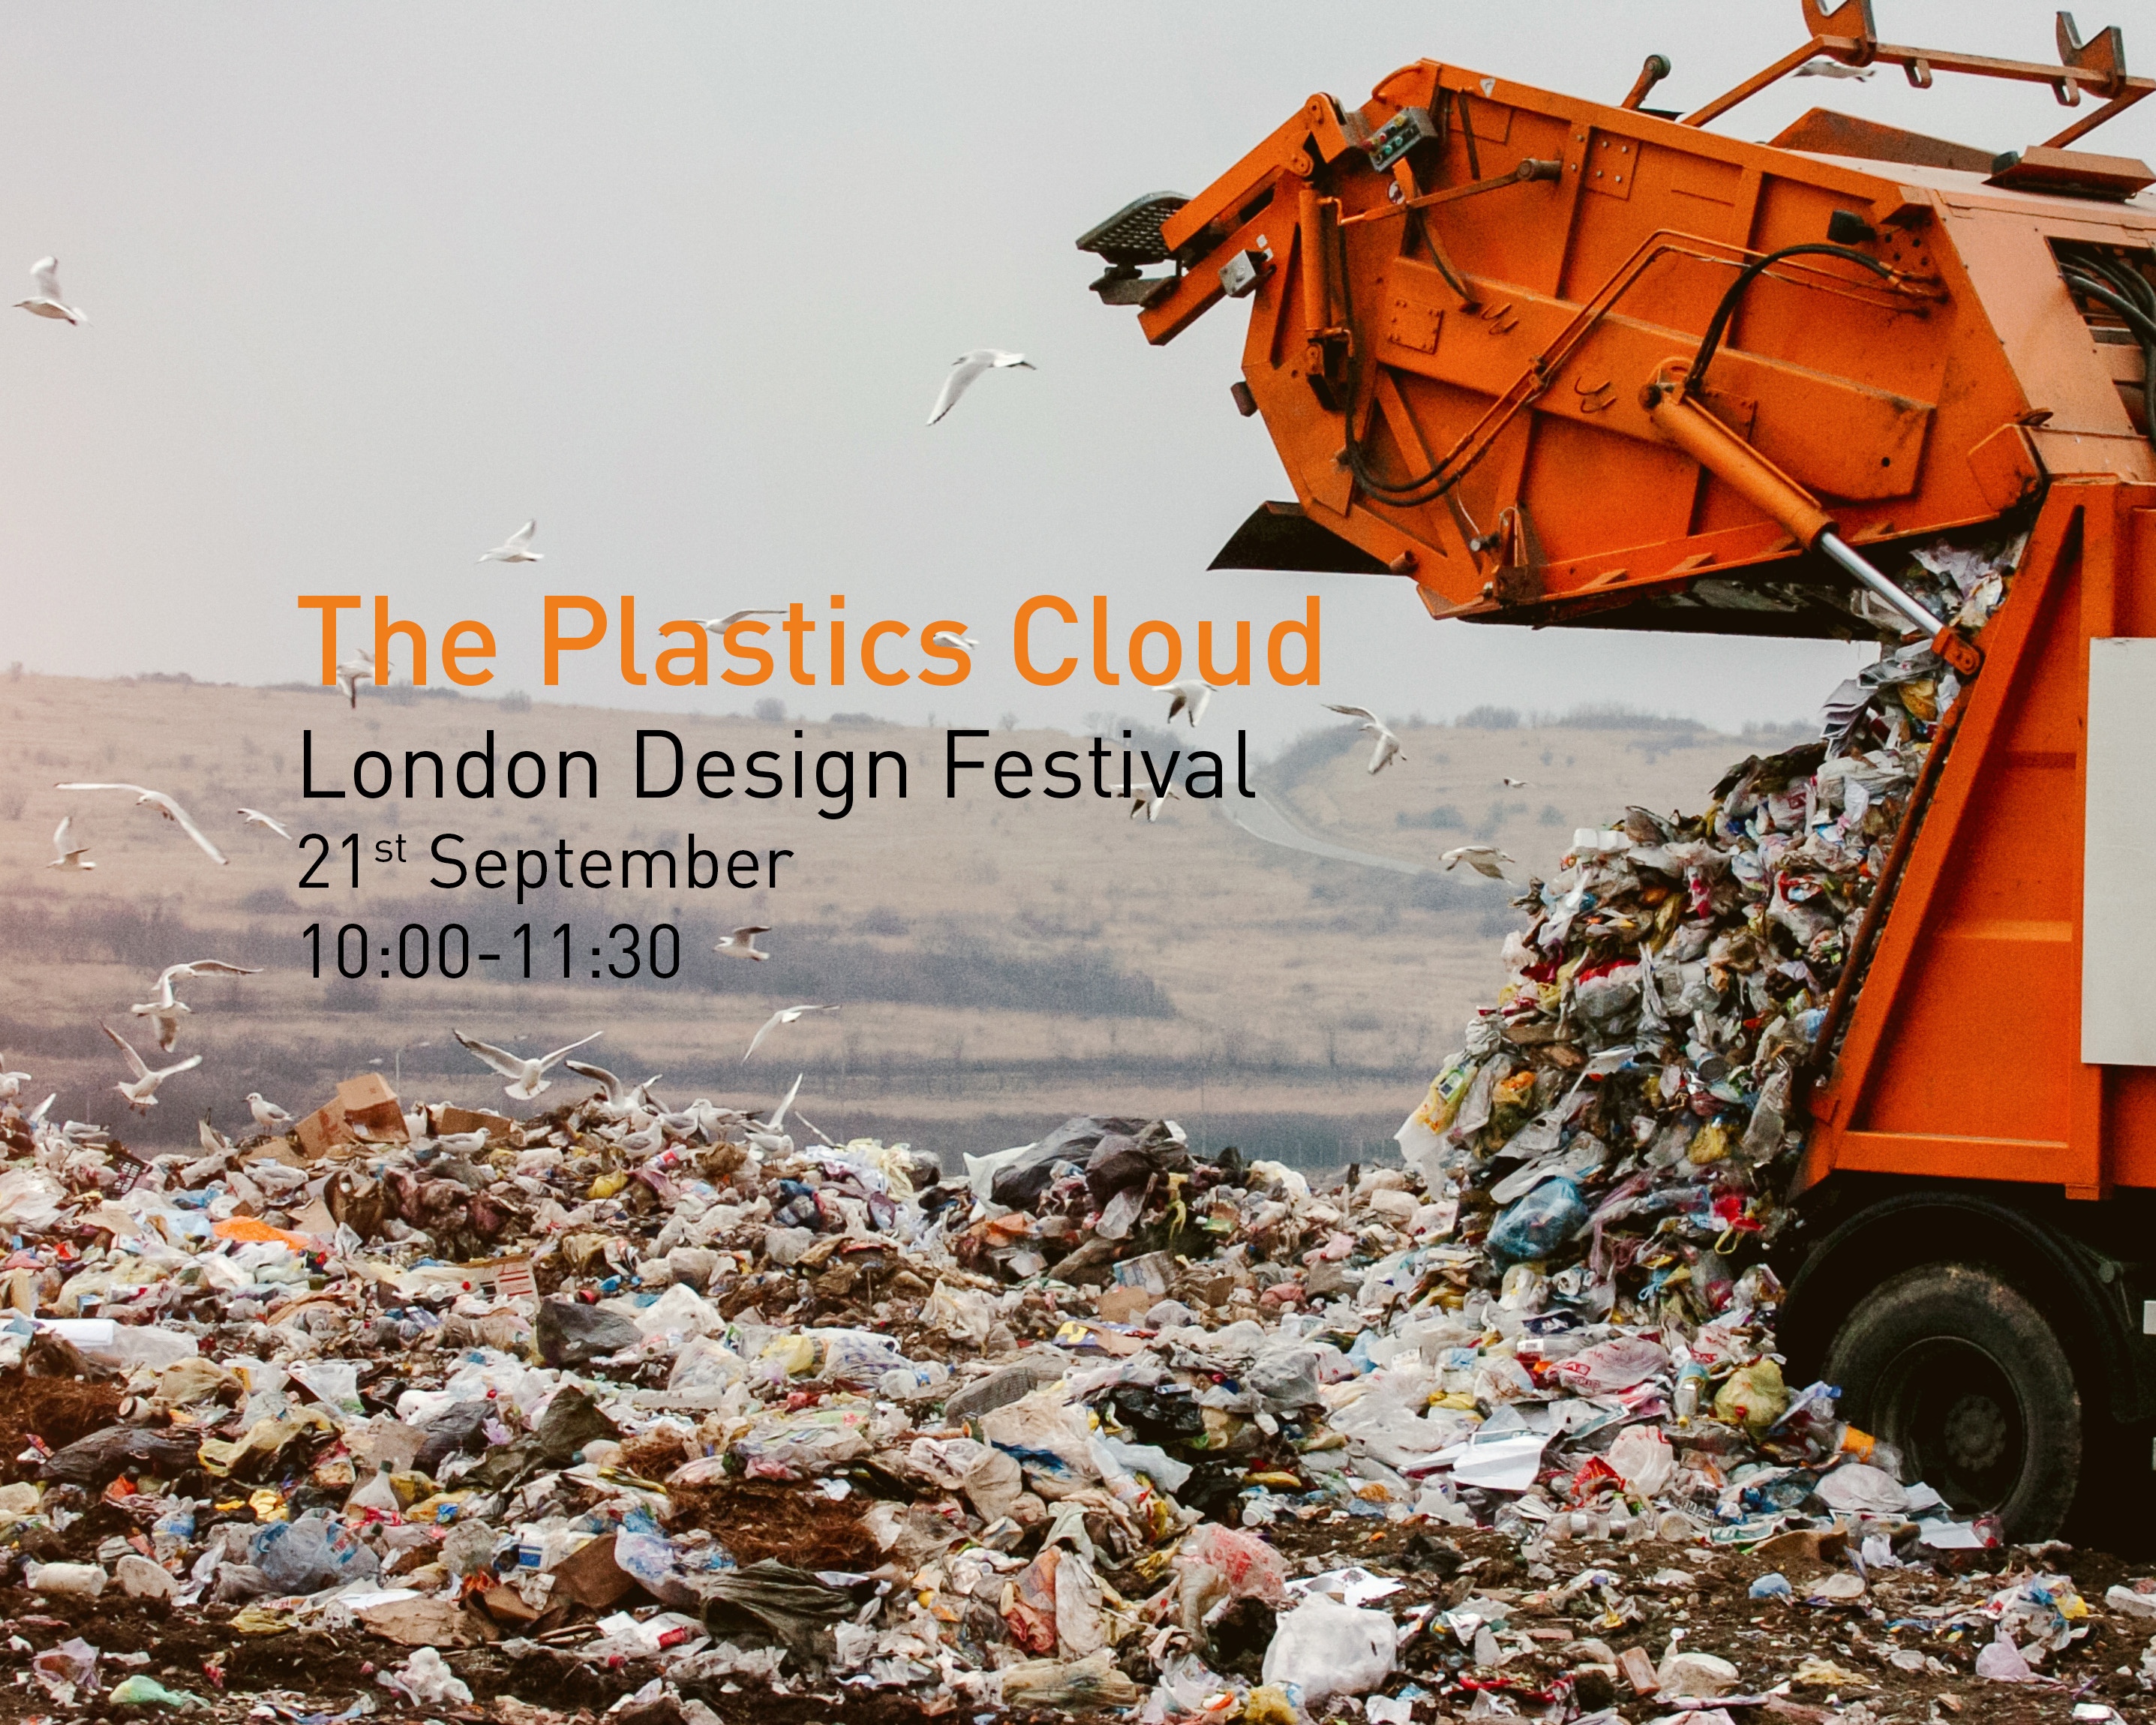 Plastics Cloud at London Design Festival